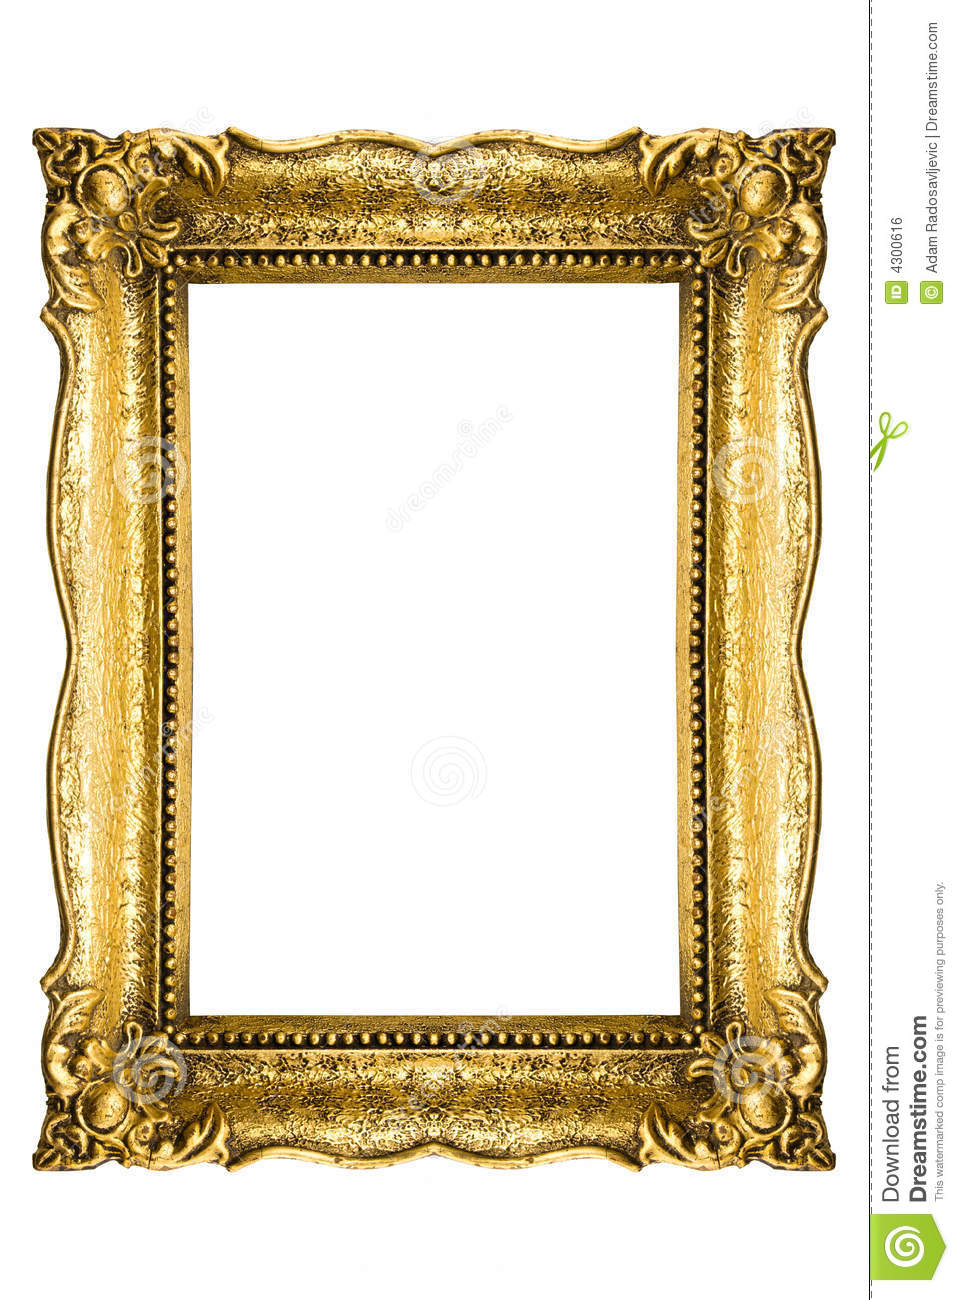 Vintage picture frame royalty free stock image image for How to make vintage frames